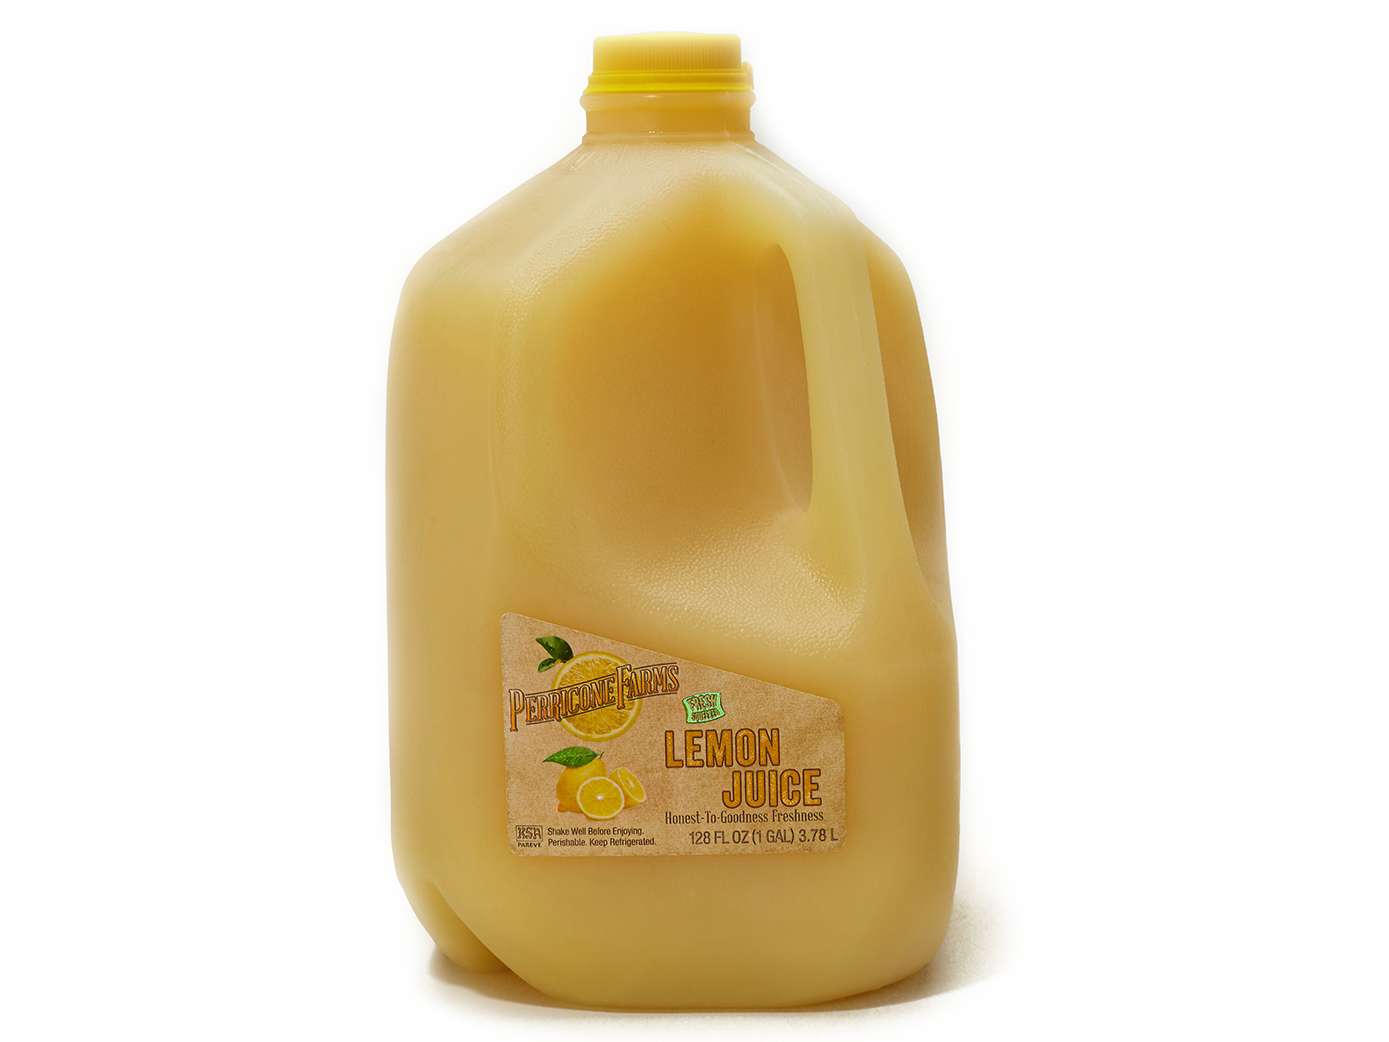 Gallon jug of fresh lemon juice